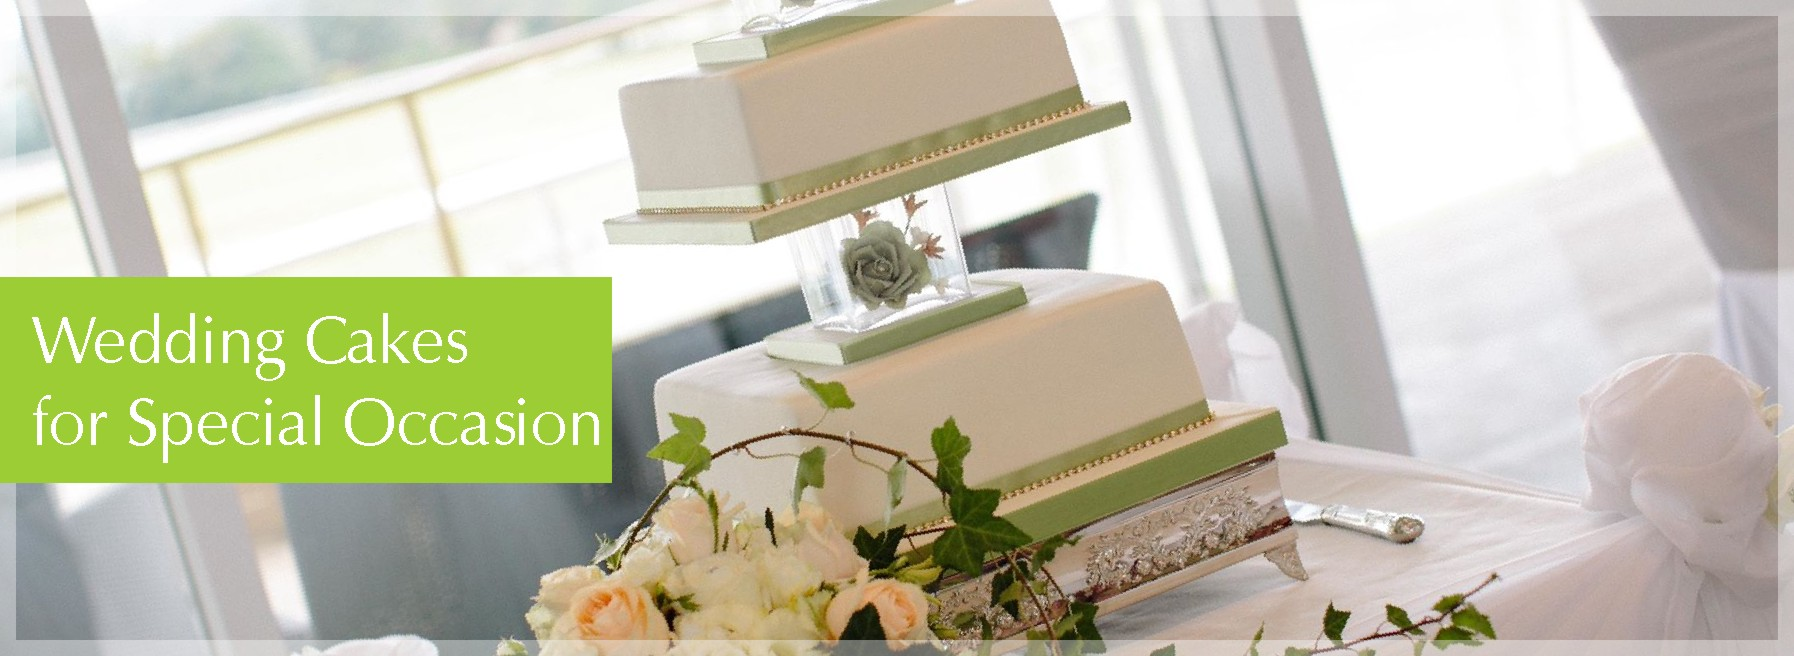 wedding cakes photo header